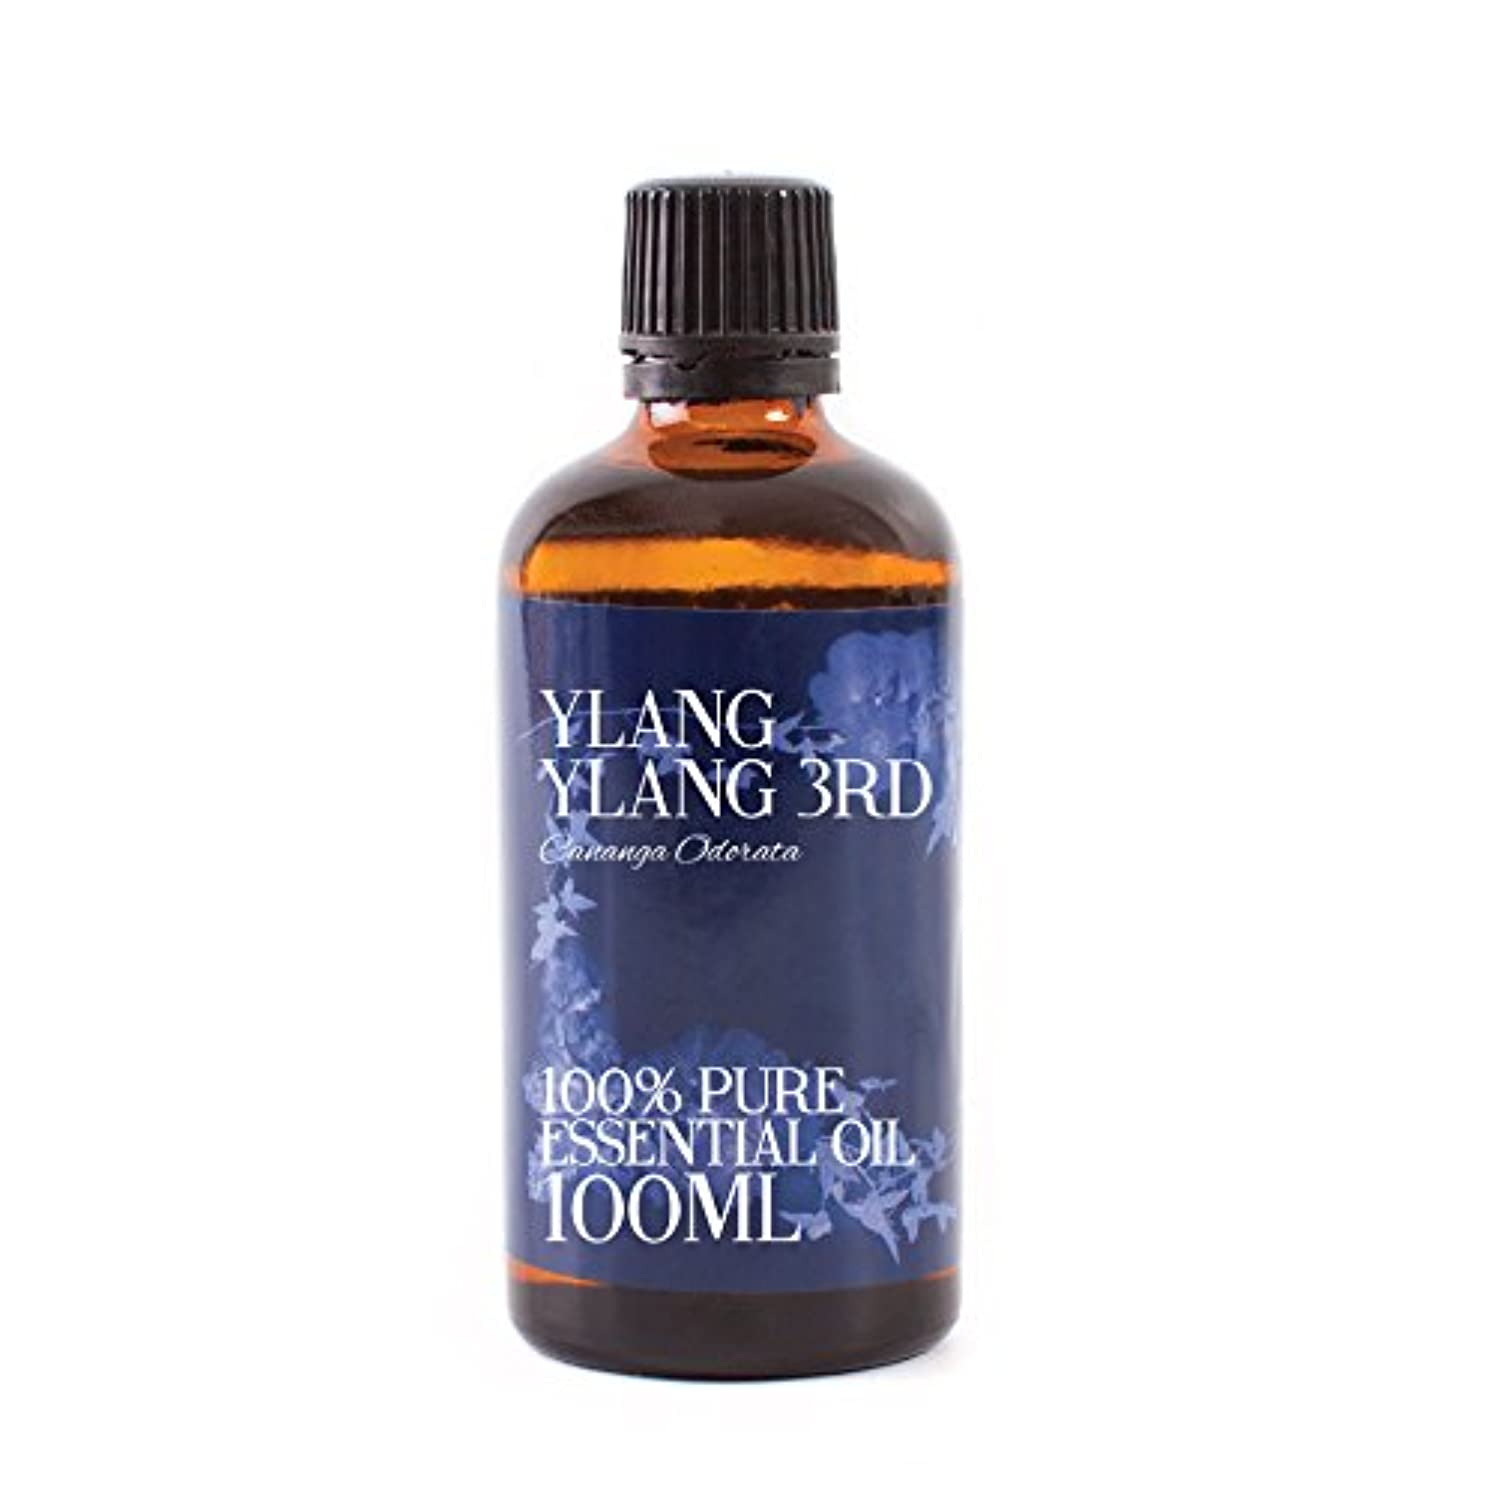 社会科キャップ競争力のあるMystic Moments | Ylang Ylang 3rd Essential Oil - 100ml - 100% Pure